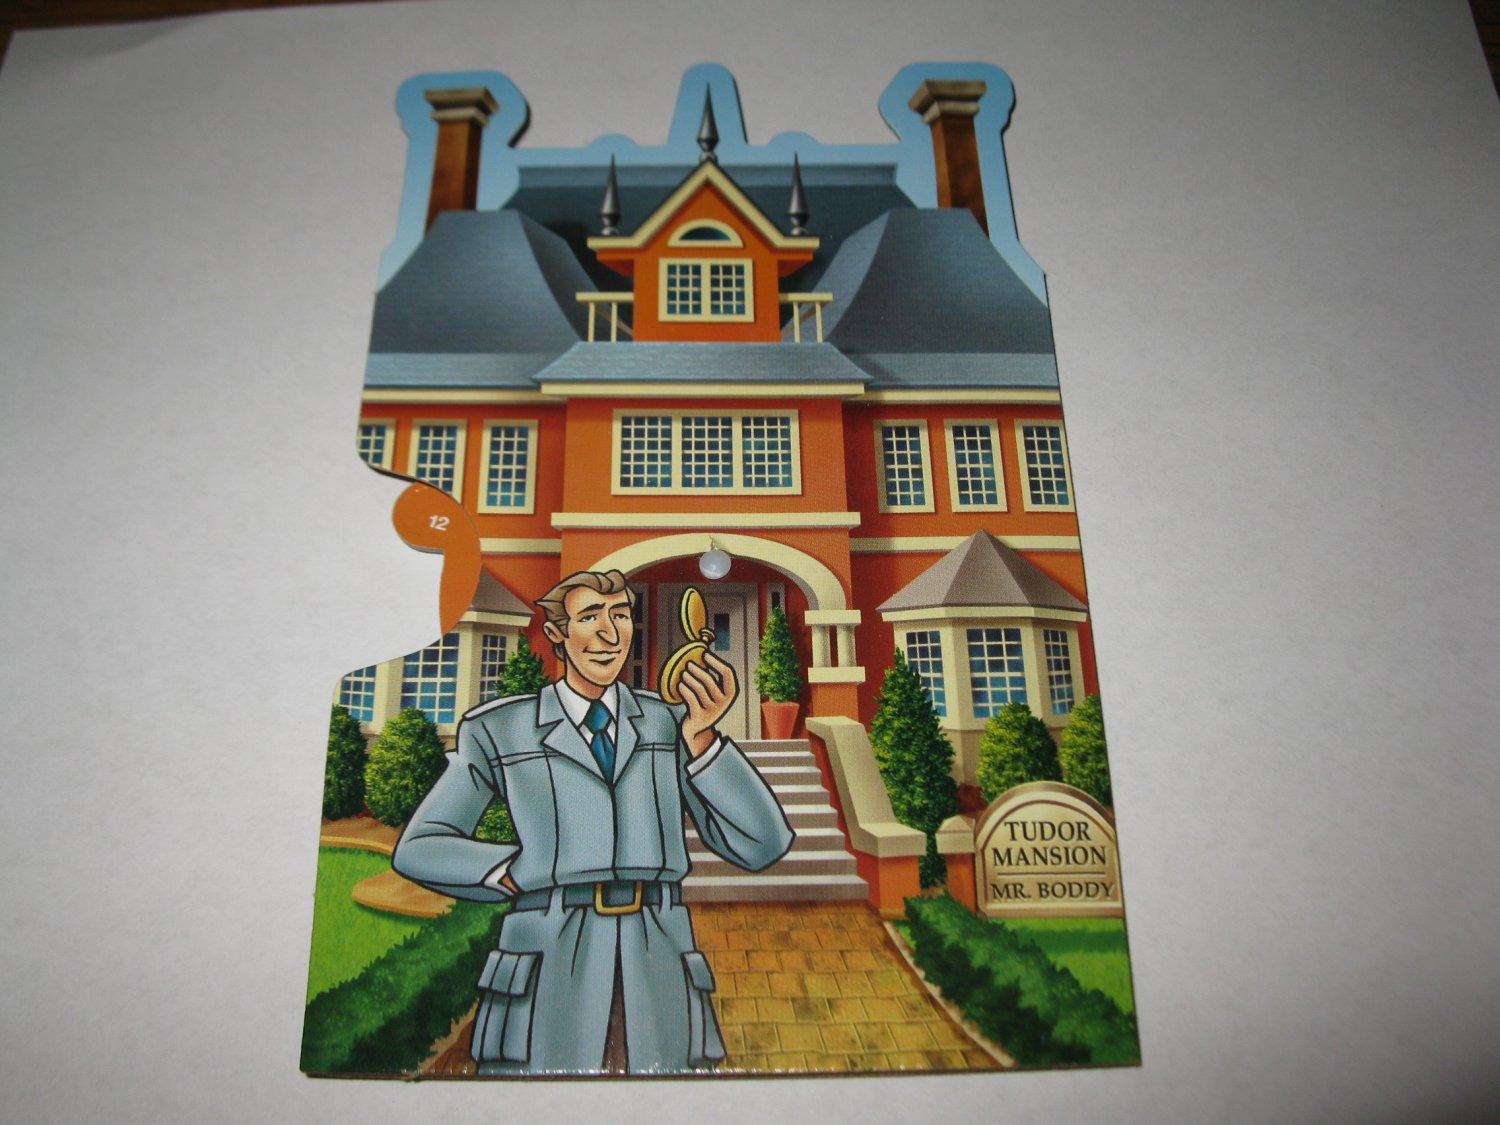 2005 Clue Mysteries Board Game Piece: Tudor Mansion orange House